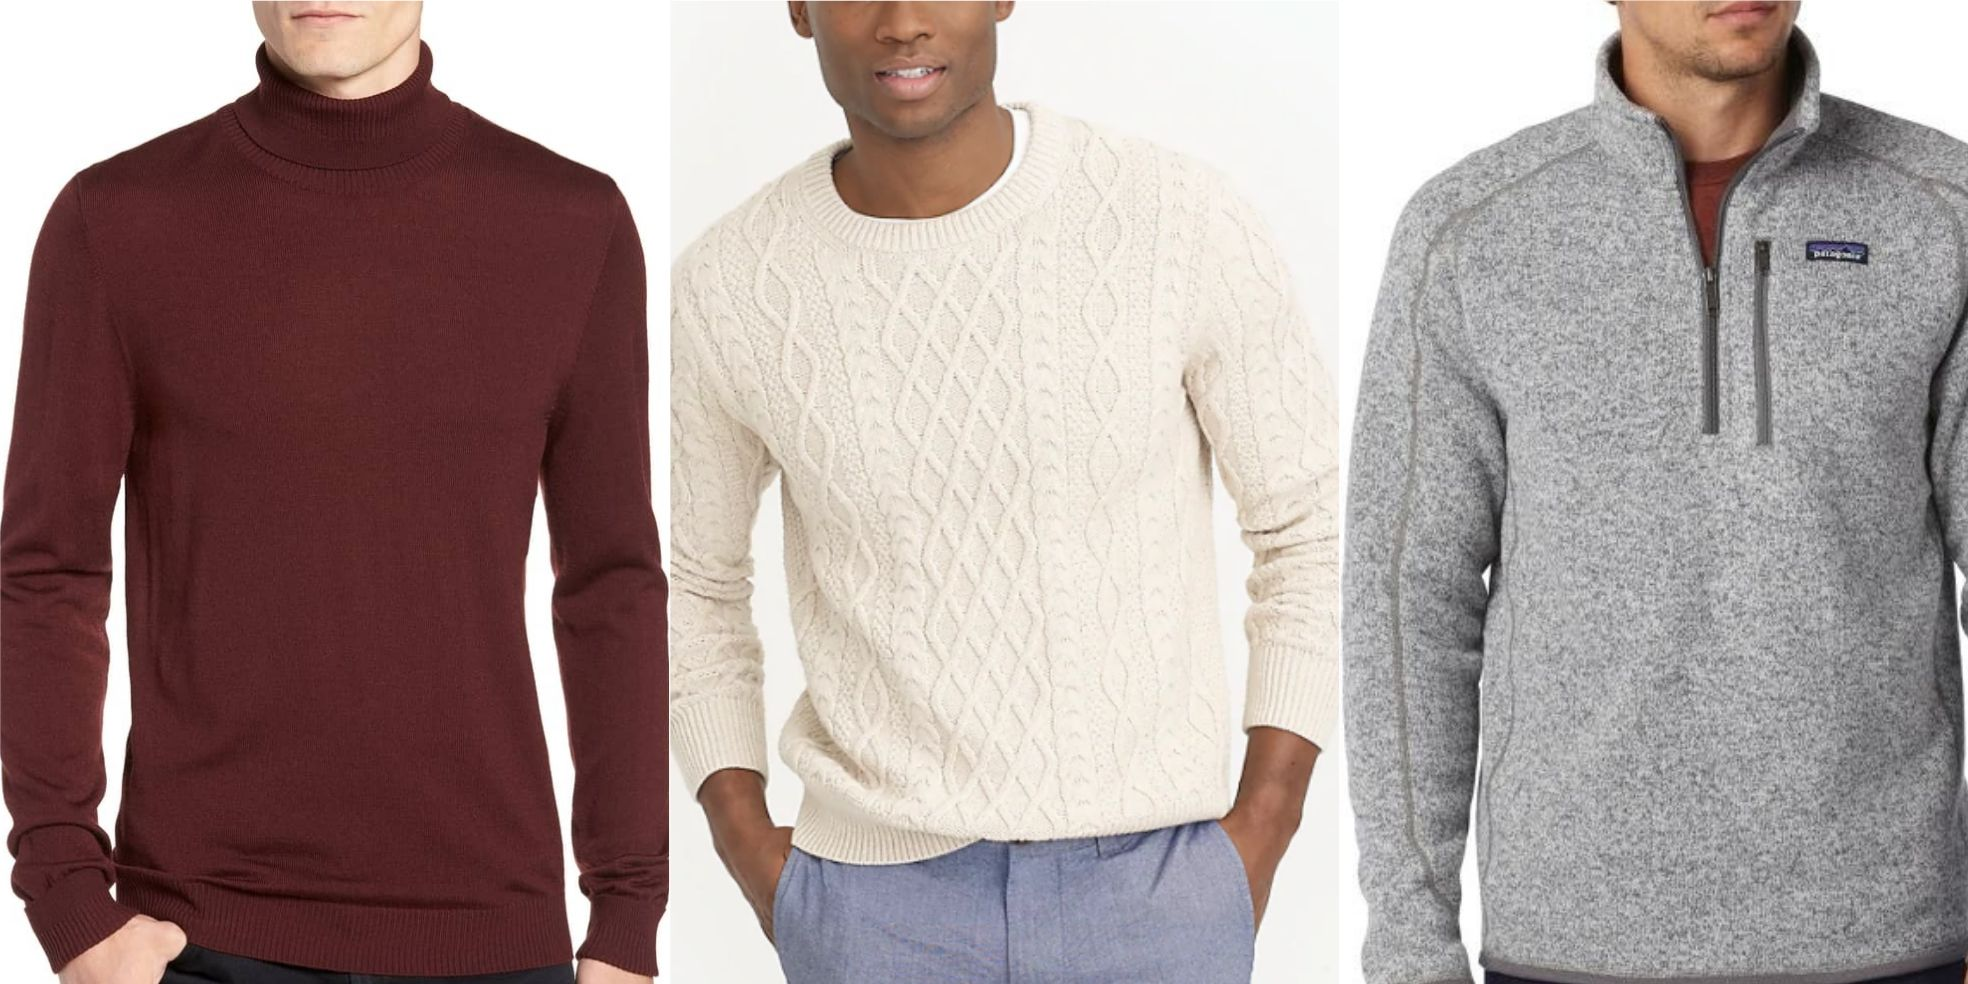 The 10 Best Winter Sweaters for Men